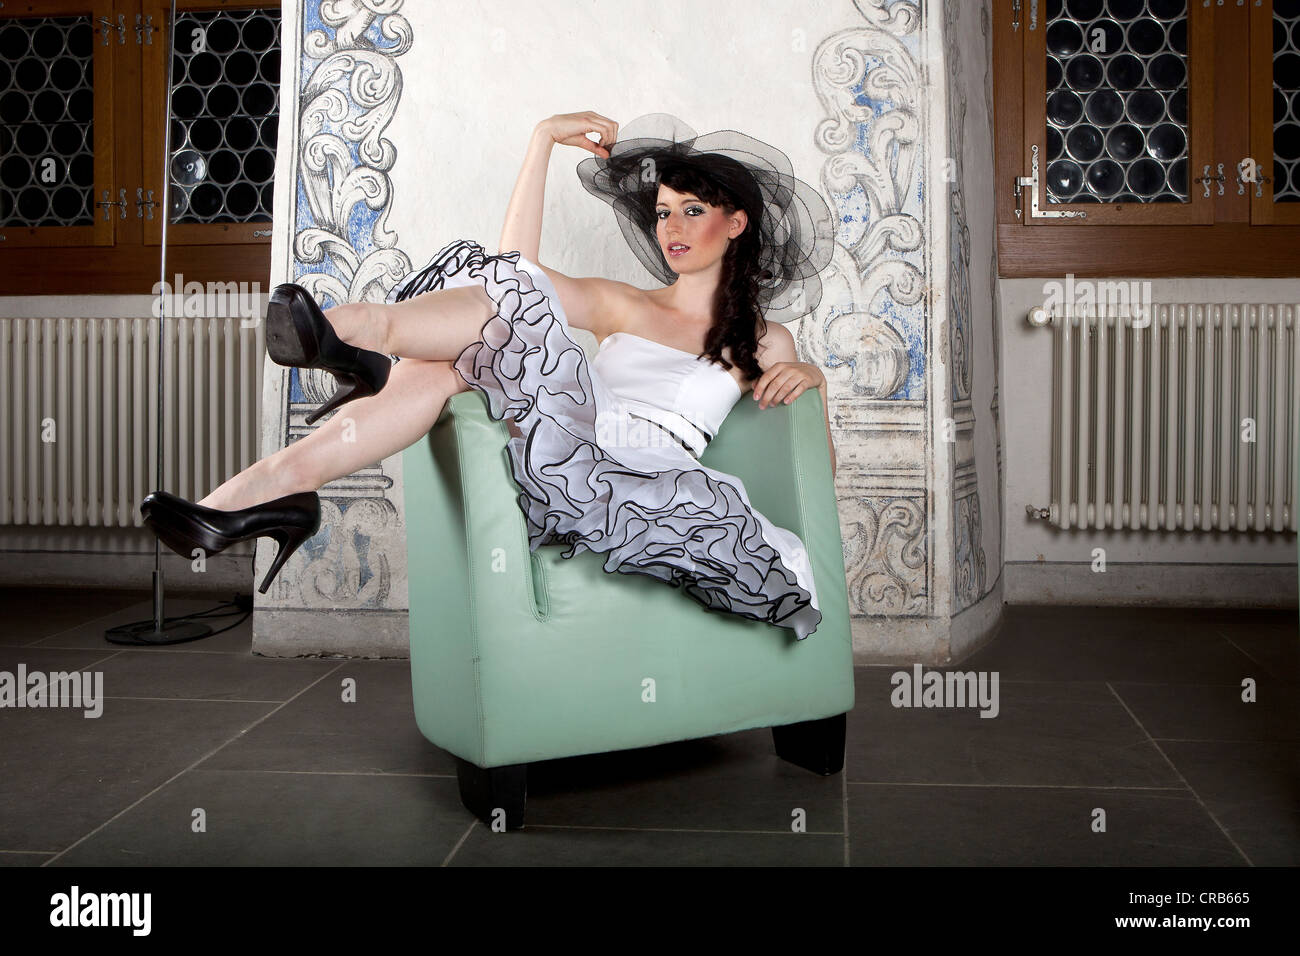 Young woman wearing a headdress and a white dress, posing on a chair - Stock Image